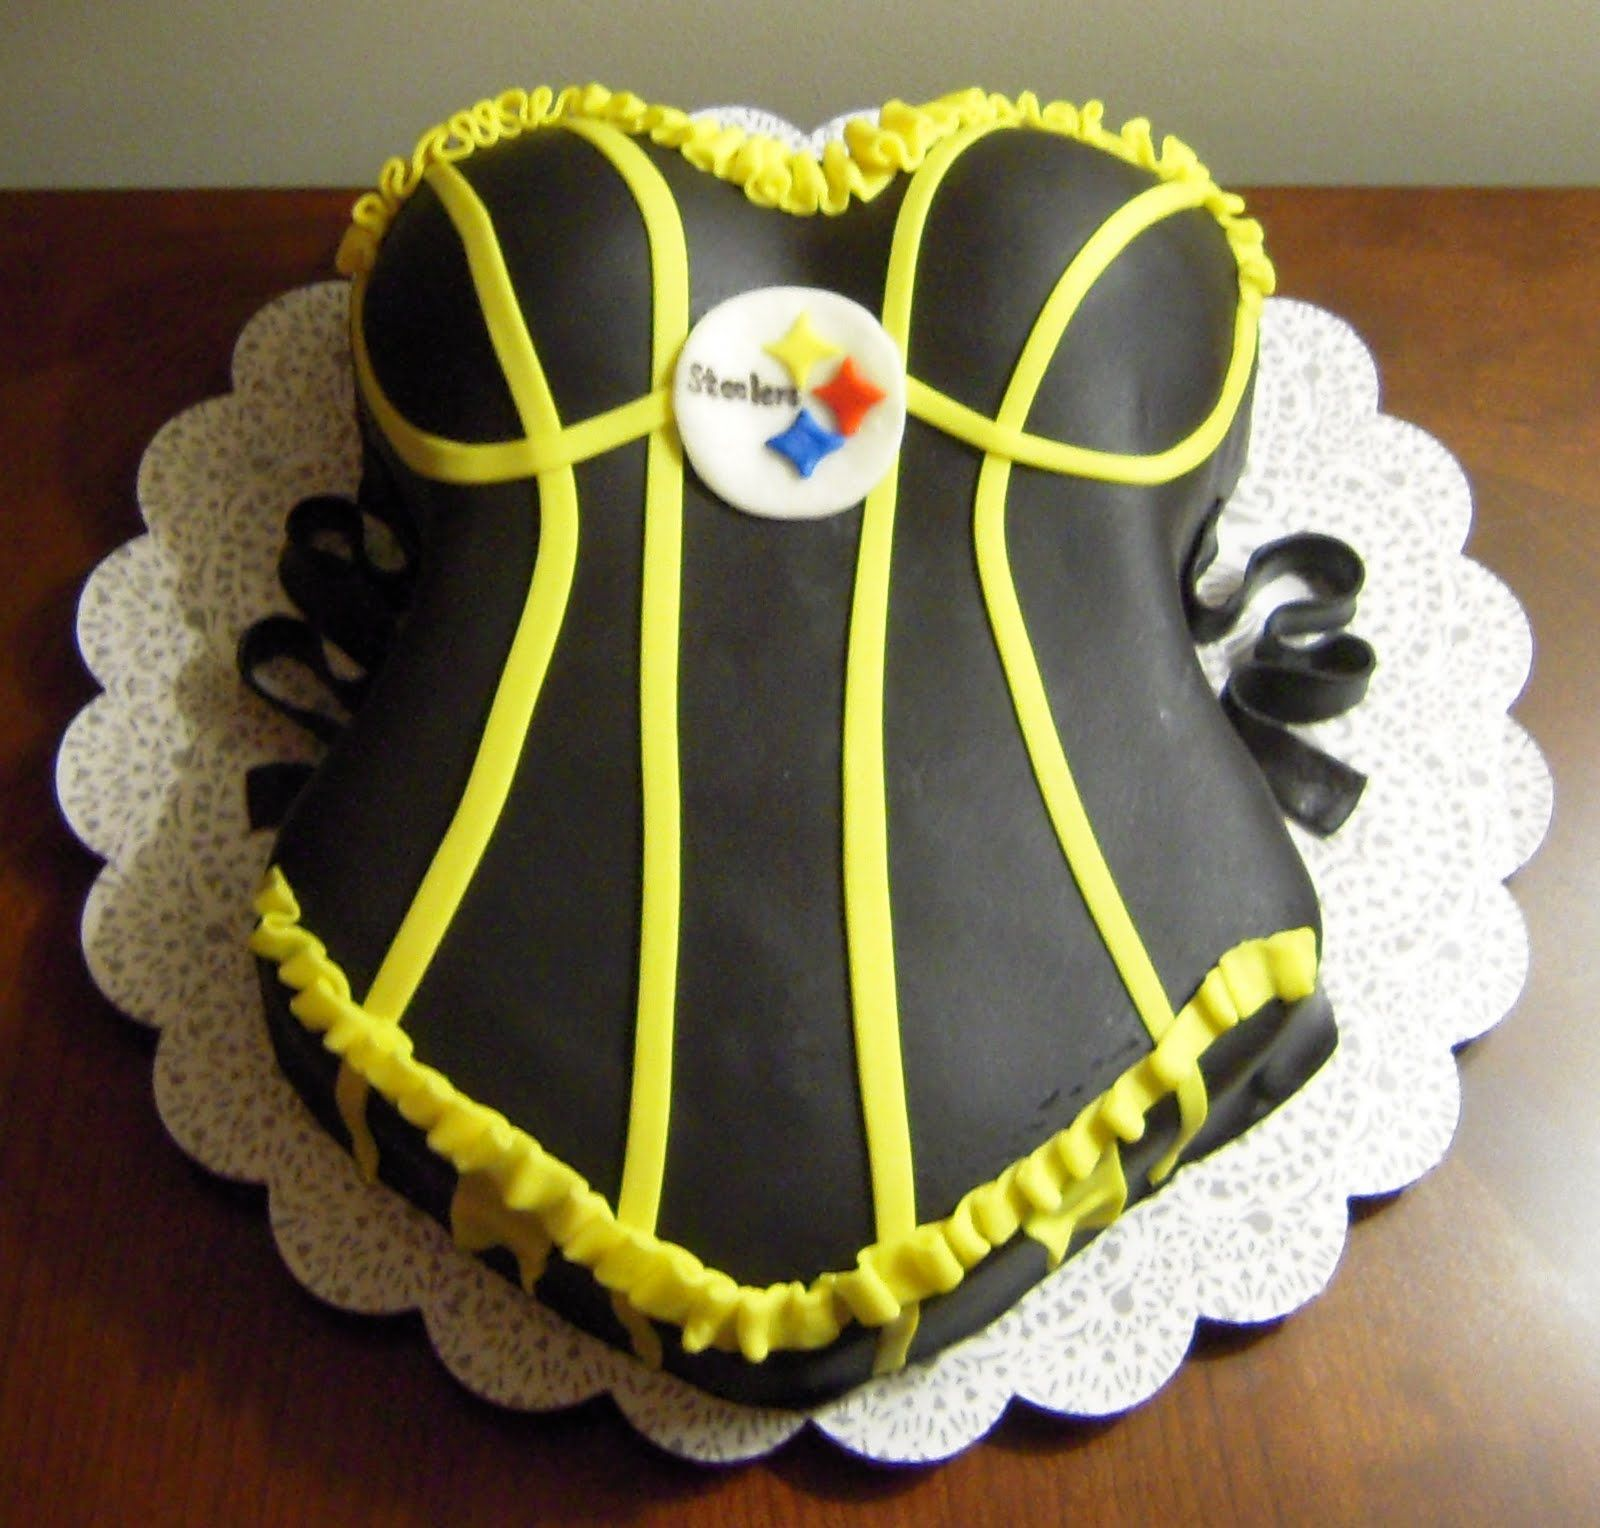 steelers cakes Bing Images cakes Pinterest Cake Man cake